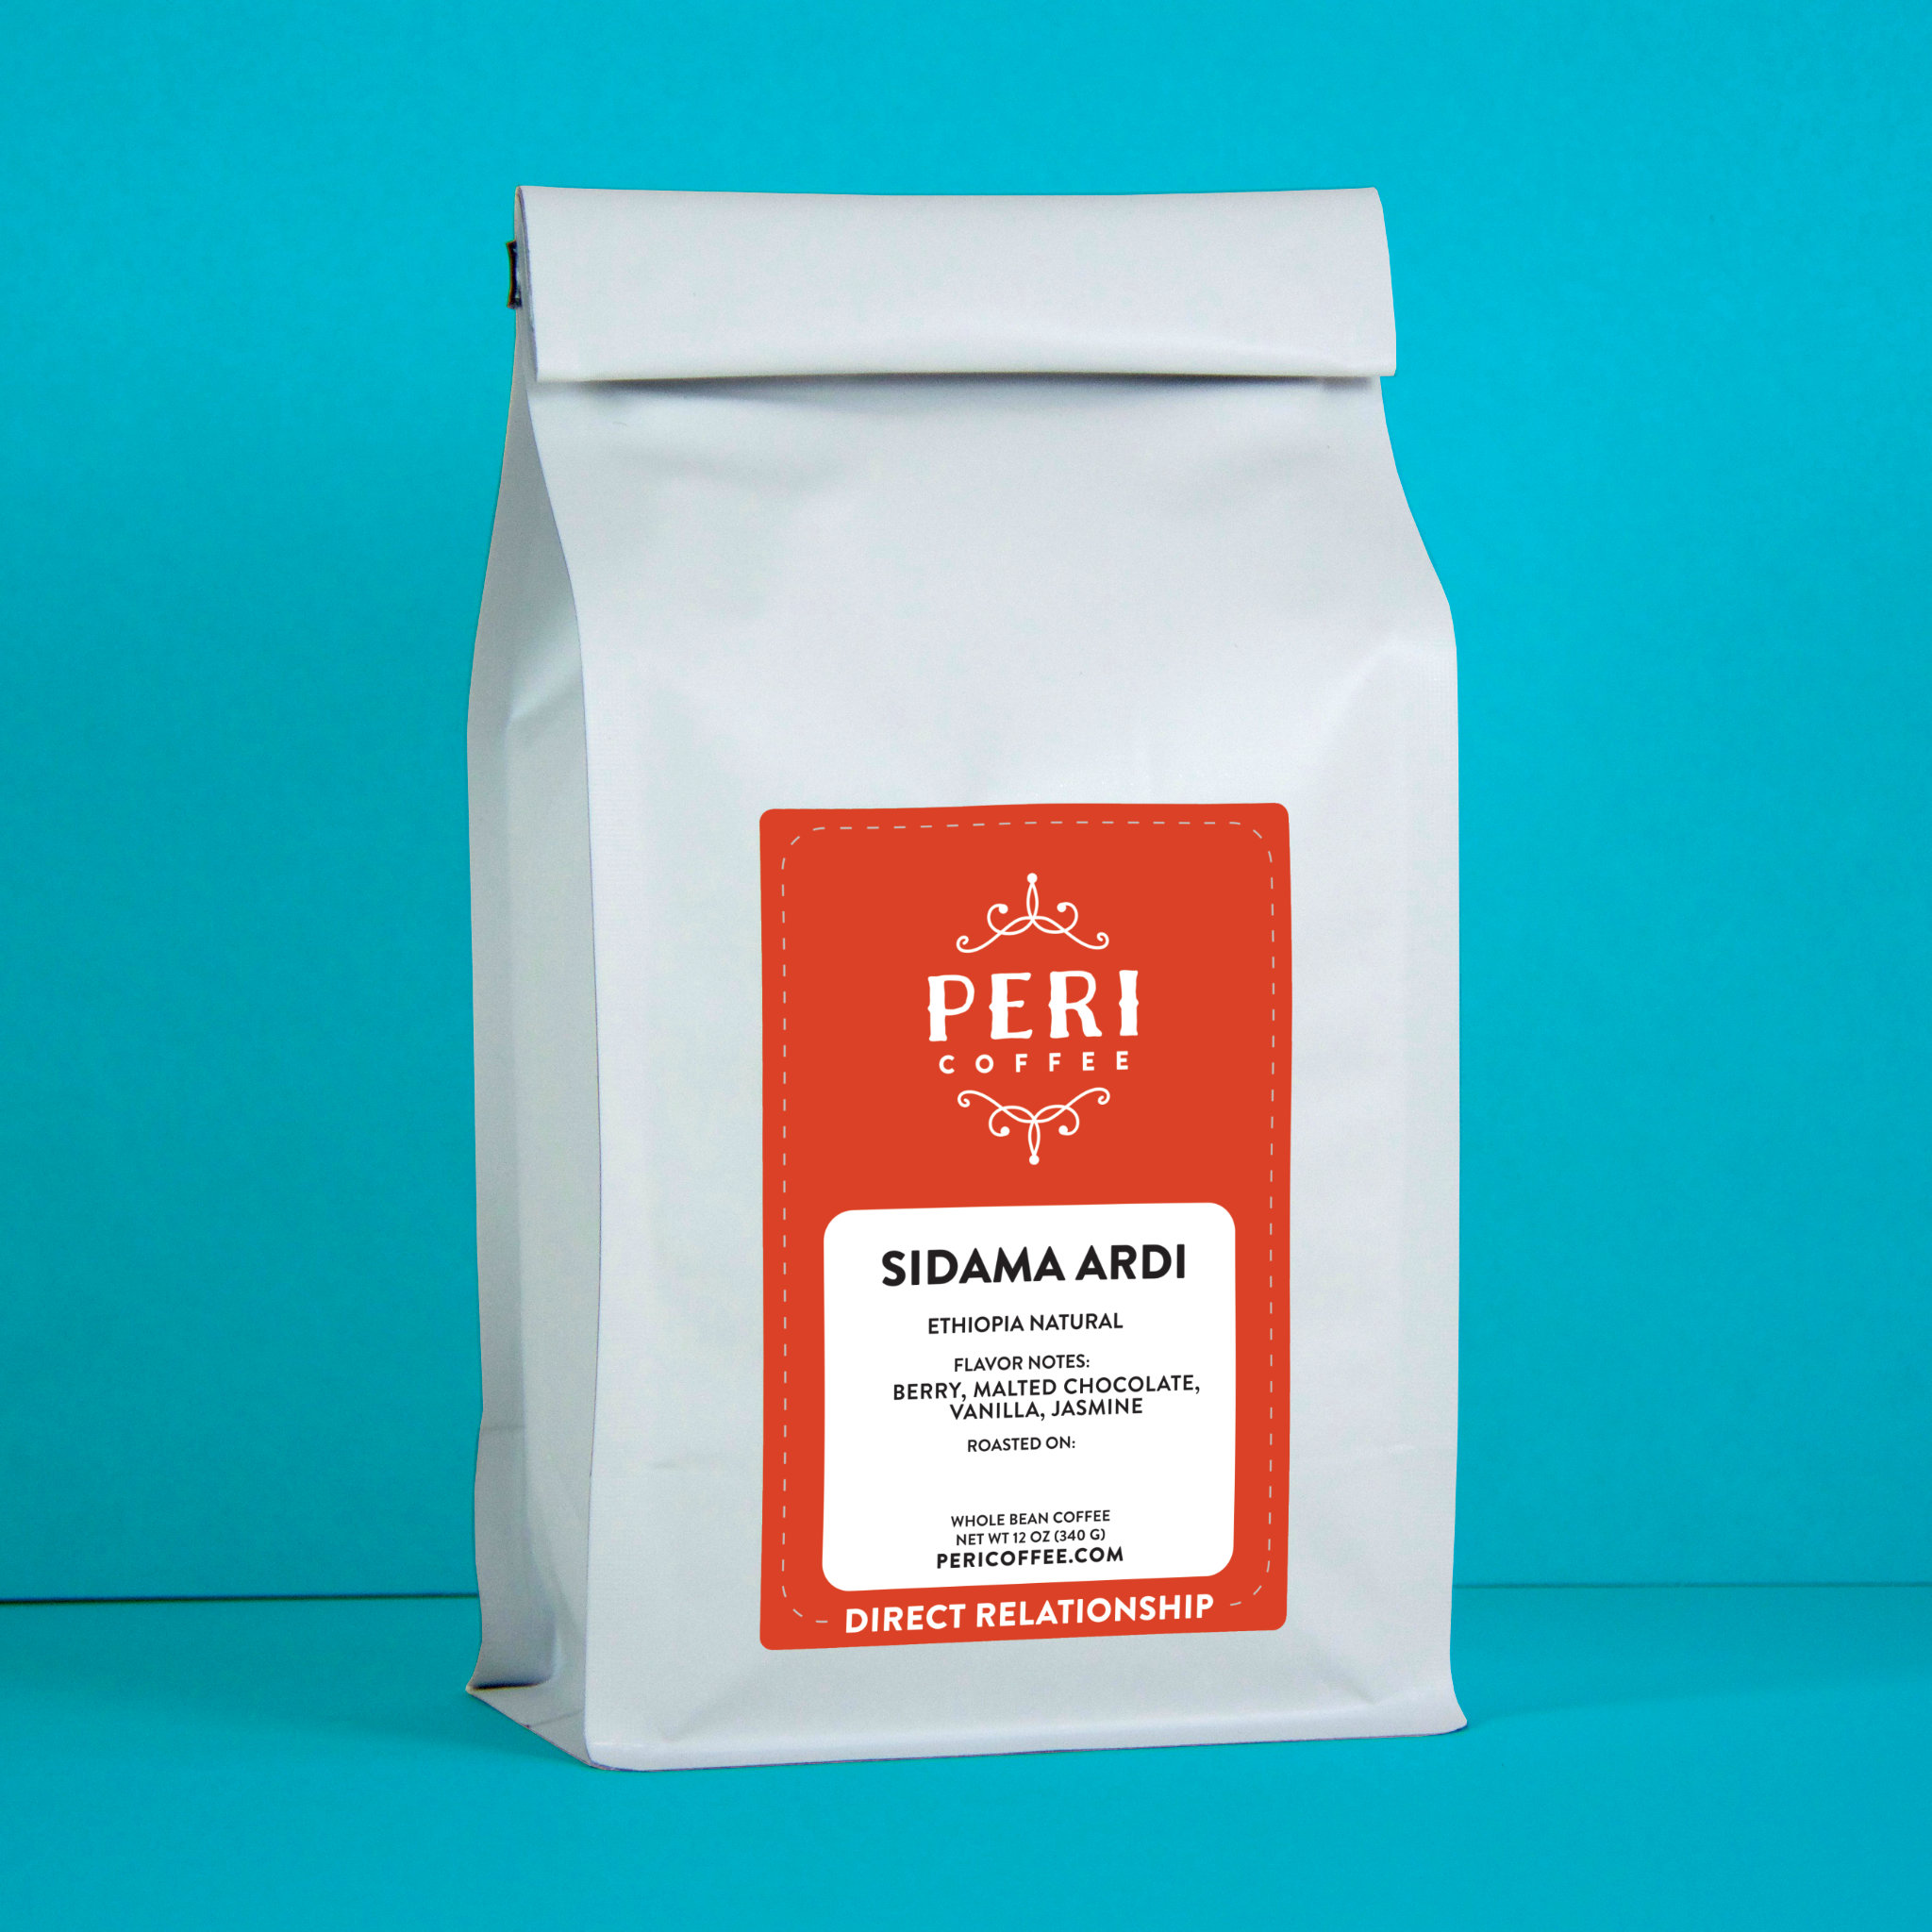 A white 12 ounce coffee bag with bright red label. Peri coffee Ethiopia Ardi Natural. Against turquoise background.